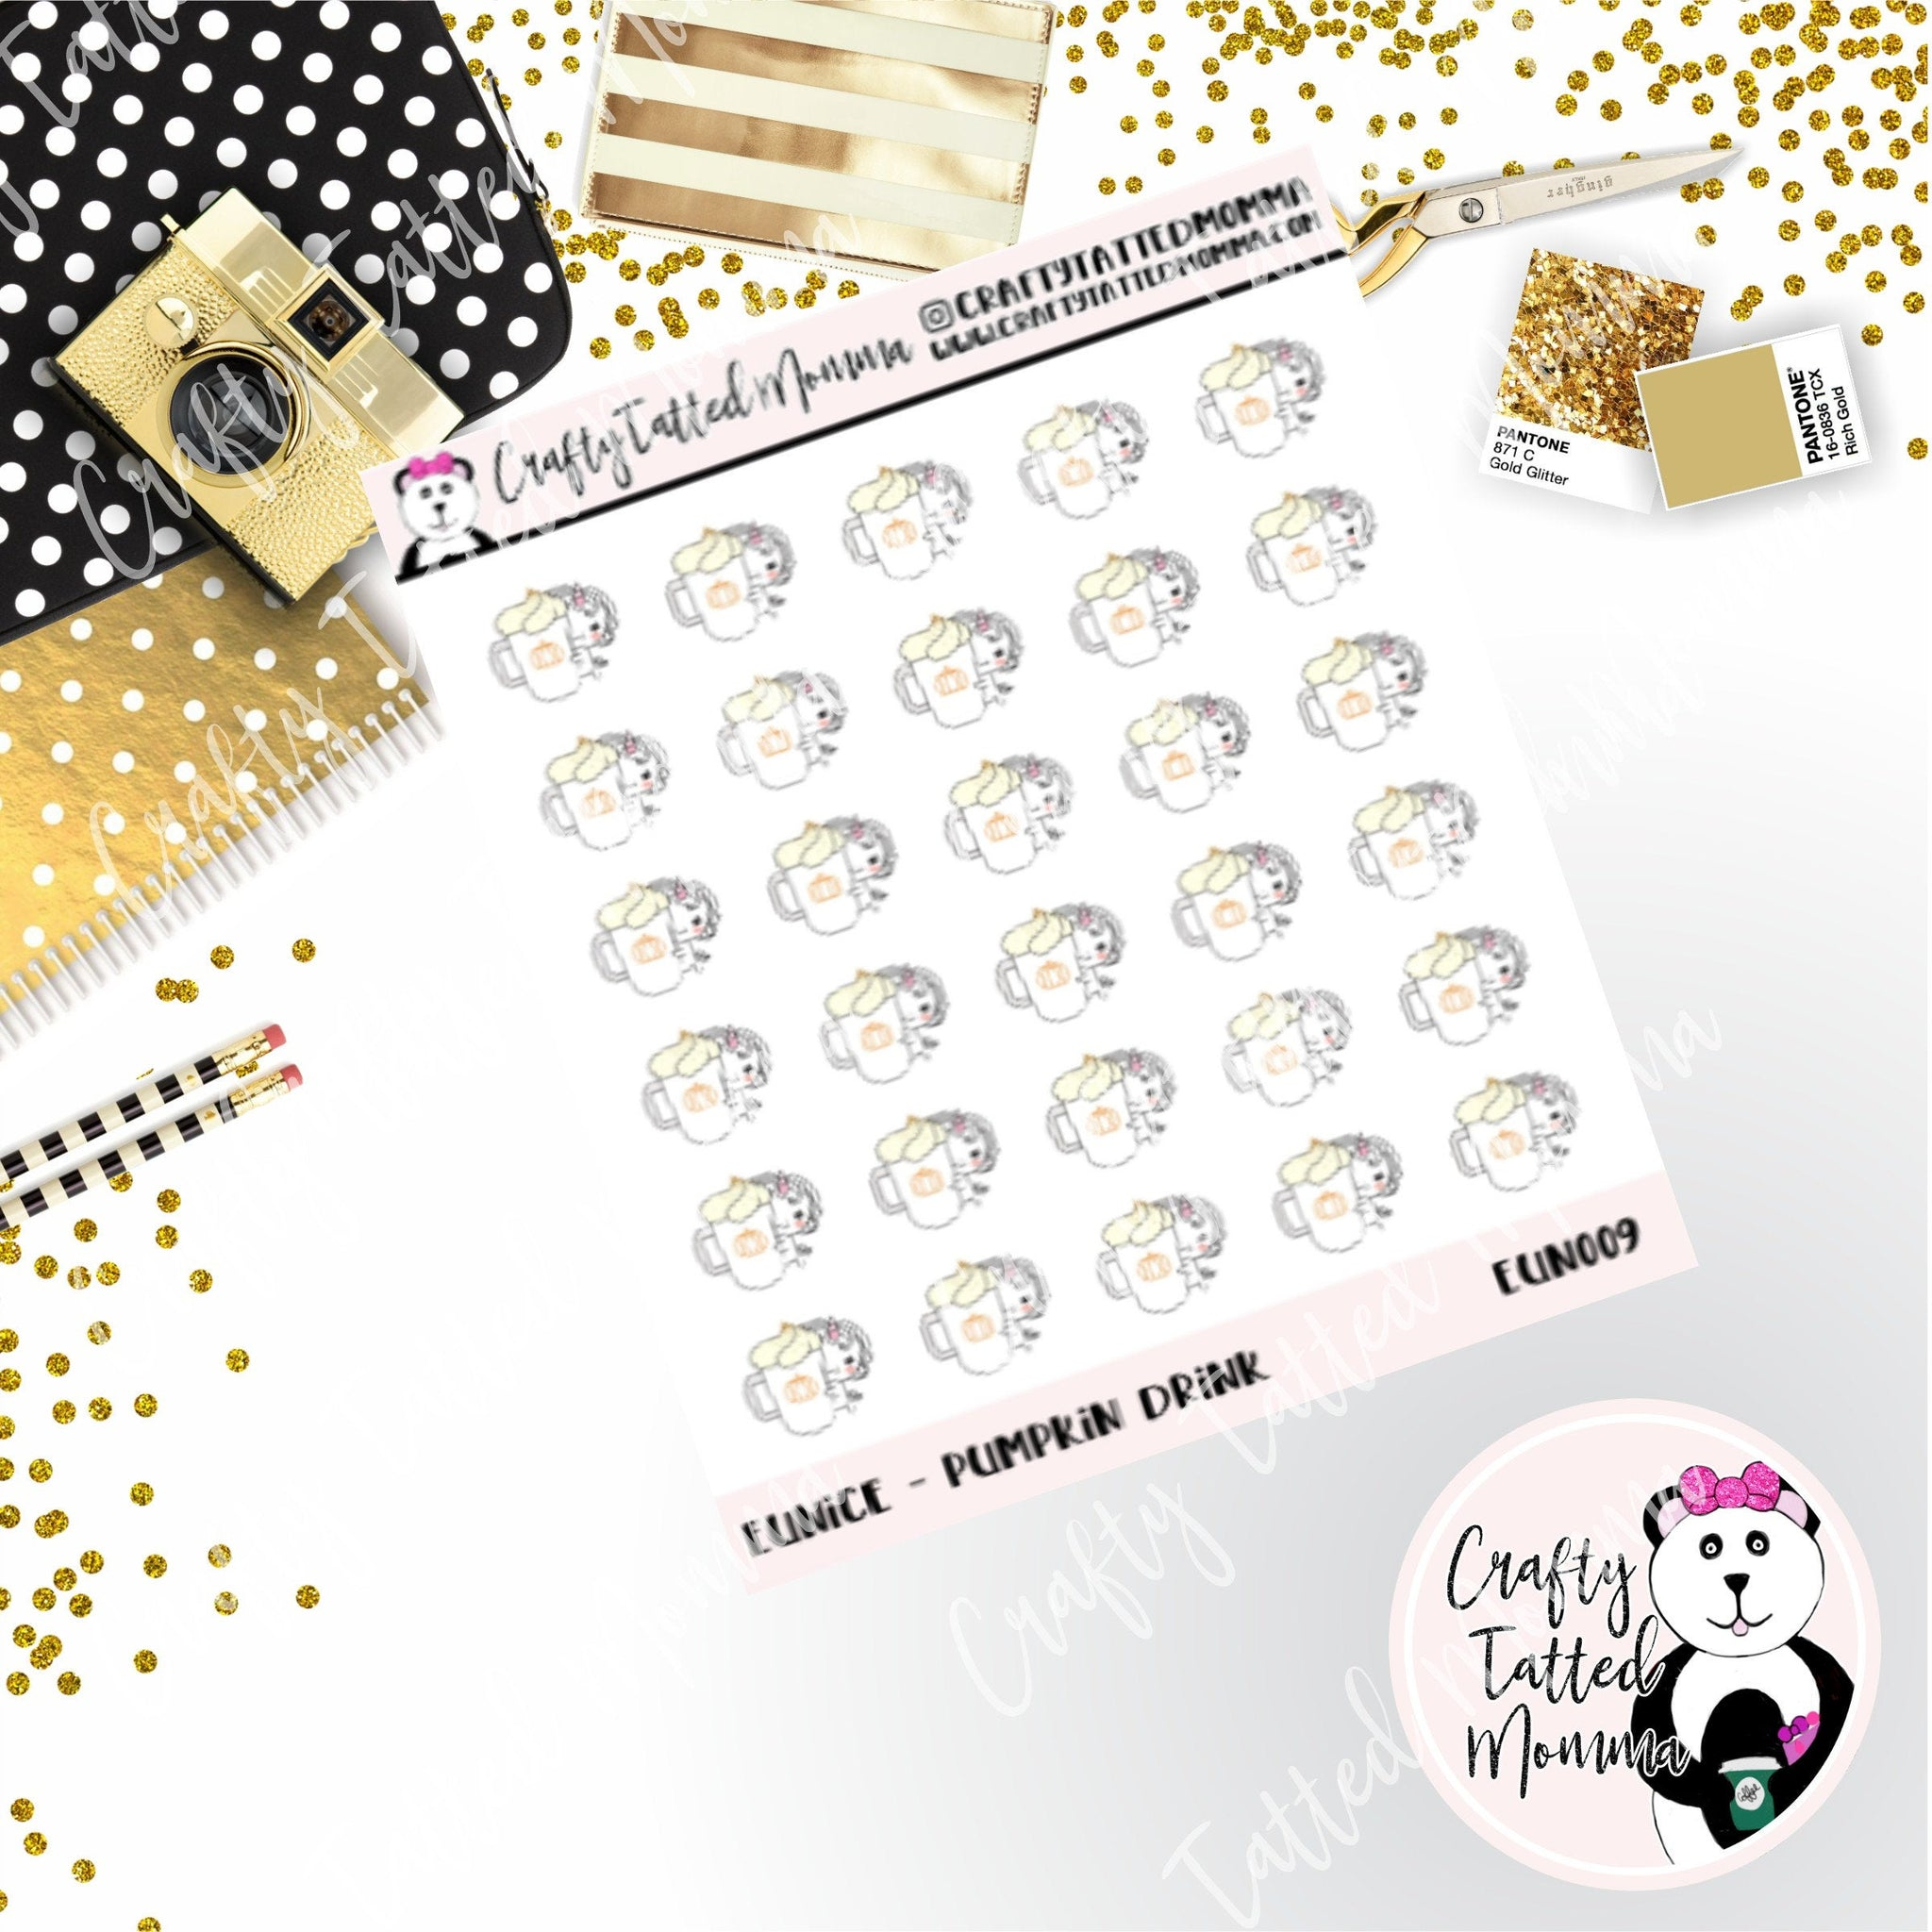 Eunice Showing off Her Pumpkin Latte   Character Stickers   Planner Stickers   Eunice the Unicron   Autumn Stickers   Pumpkin   Fall   Stickers